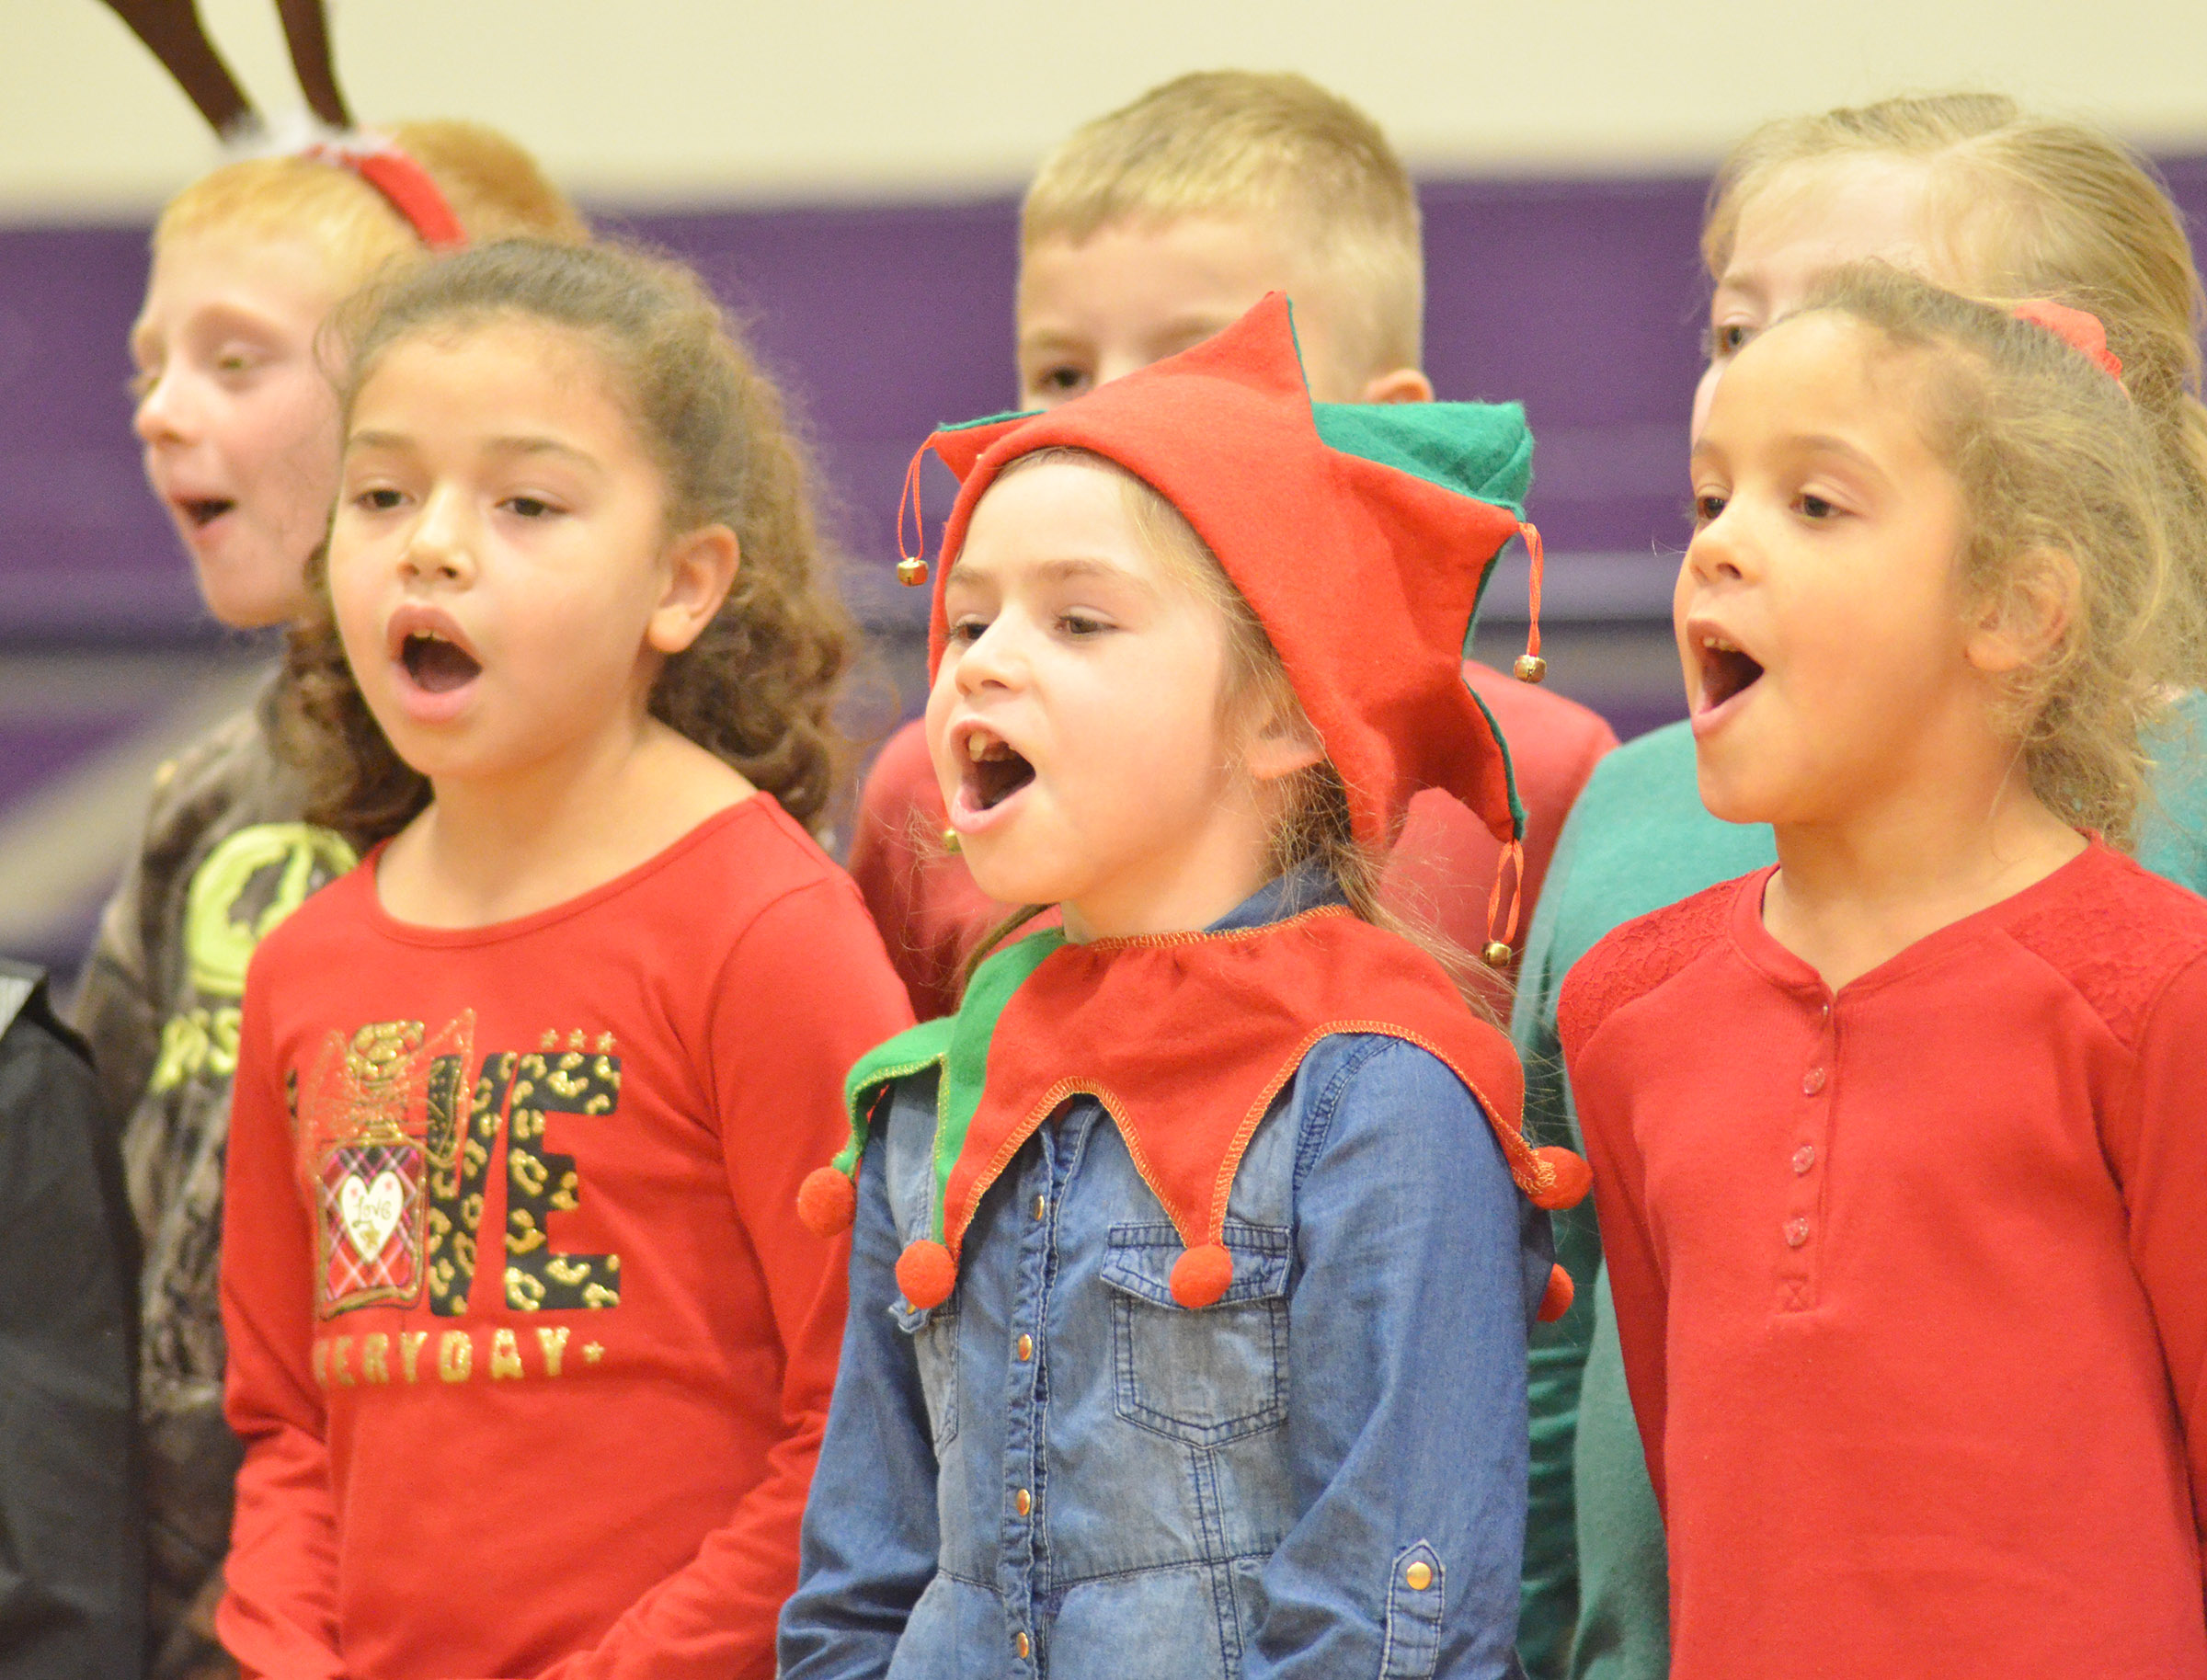 CES first-graders, from left, Ammarissa Nunez, Lainey Price and Keiava Thompson sing.